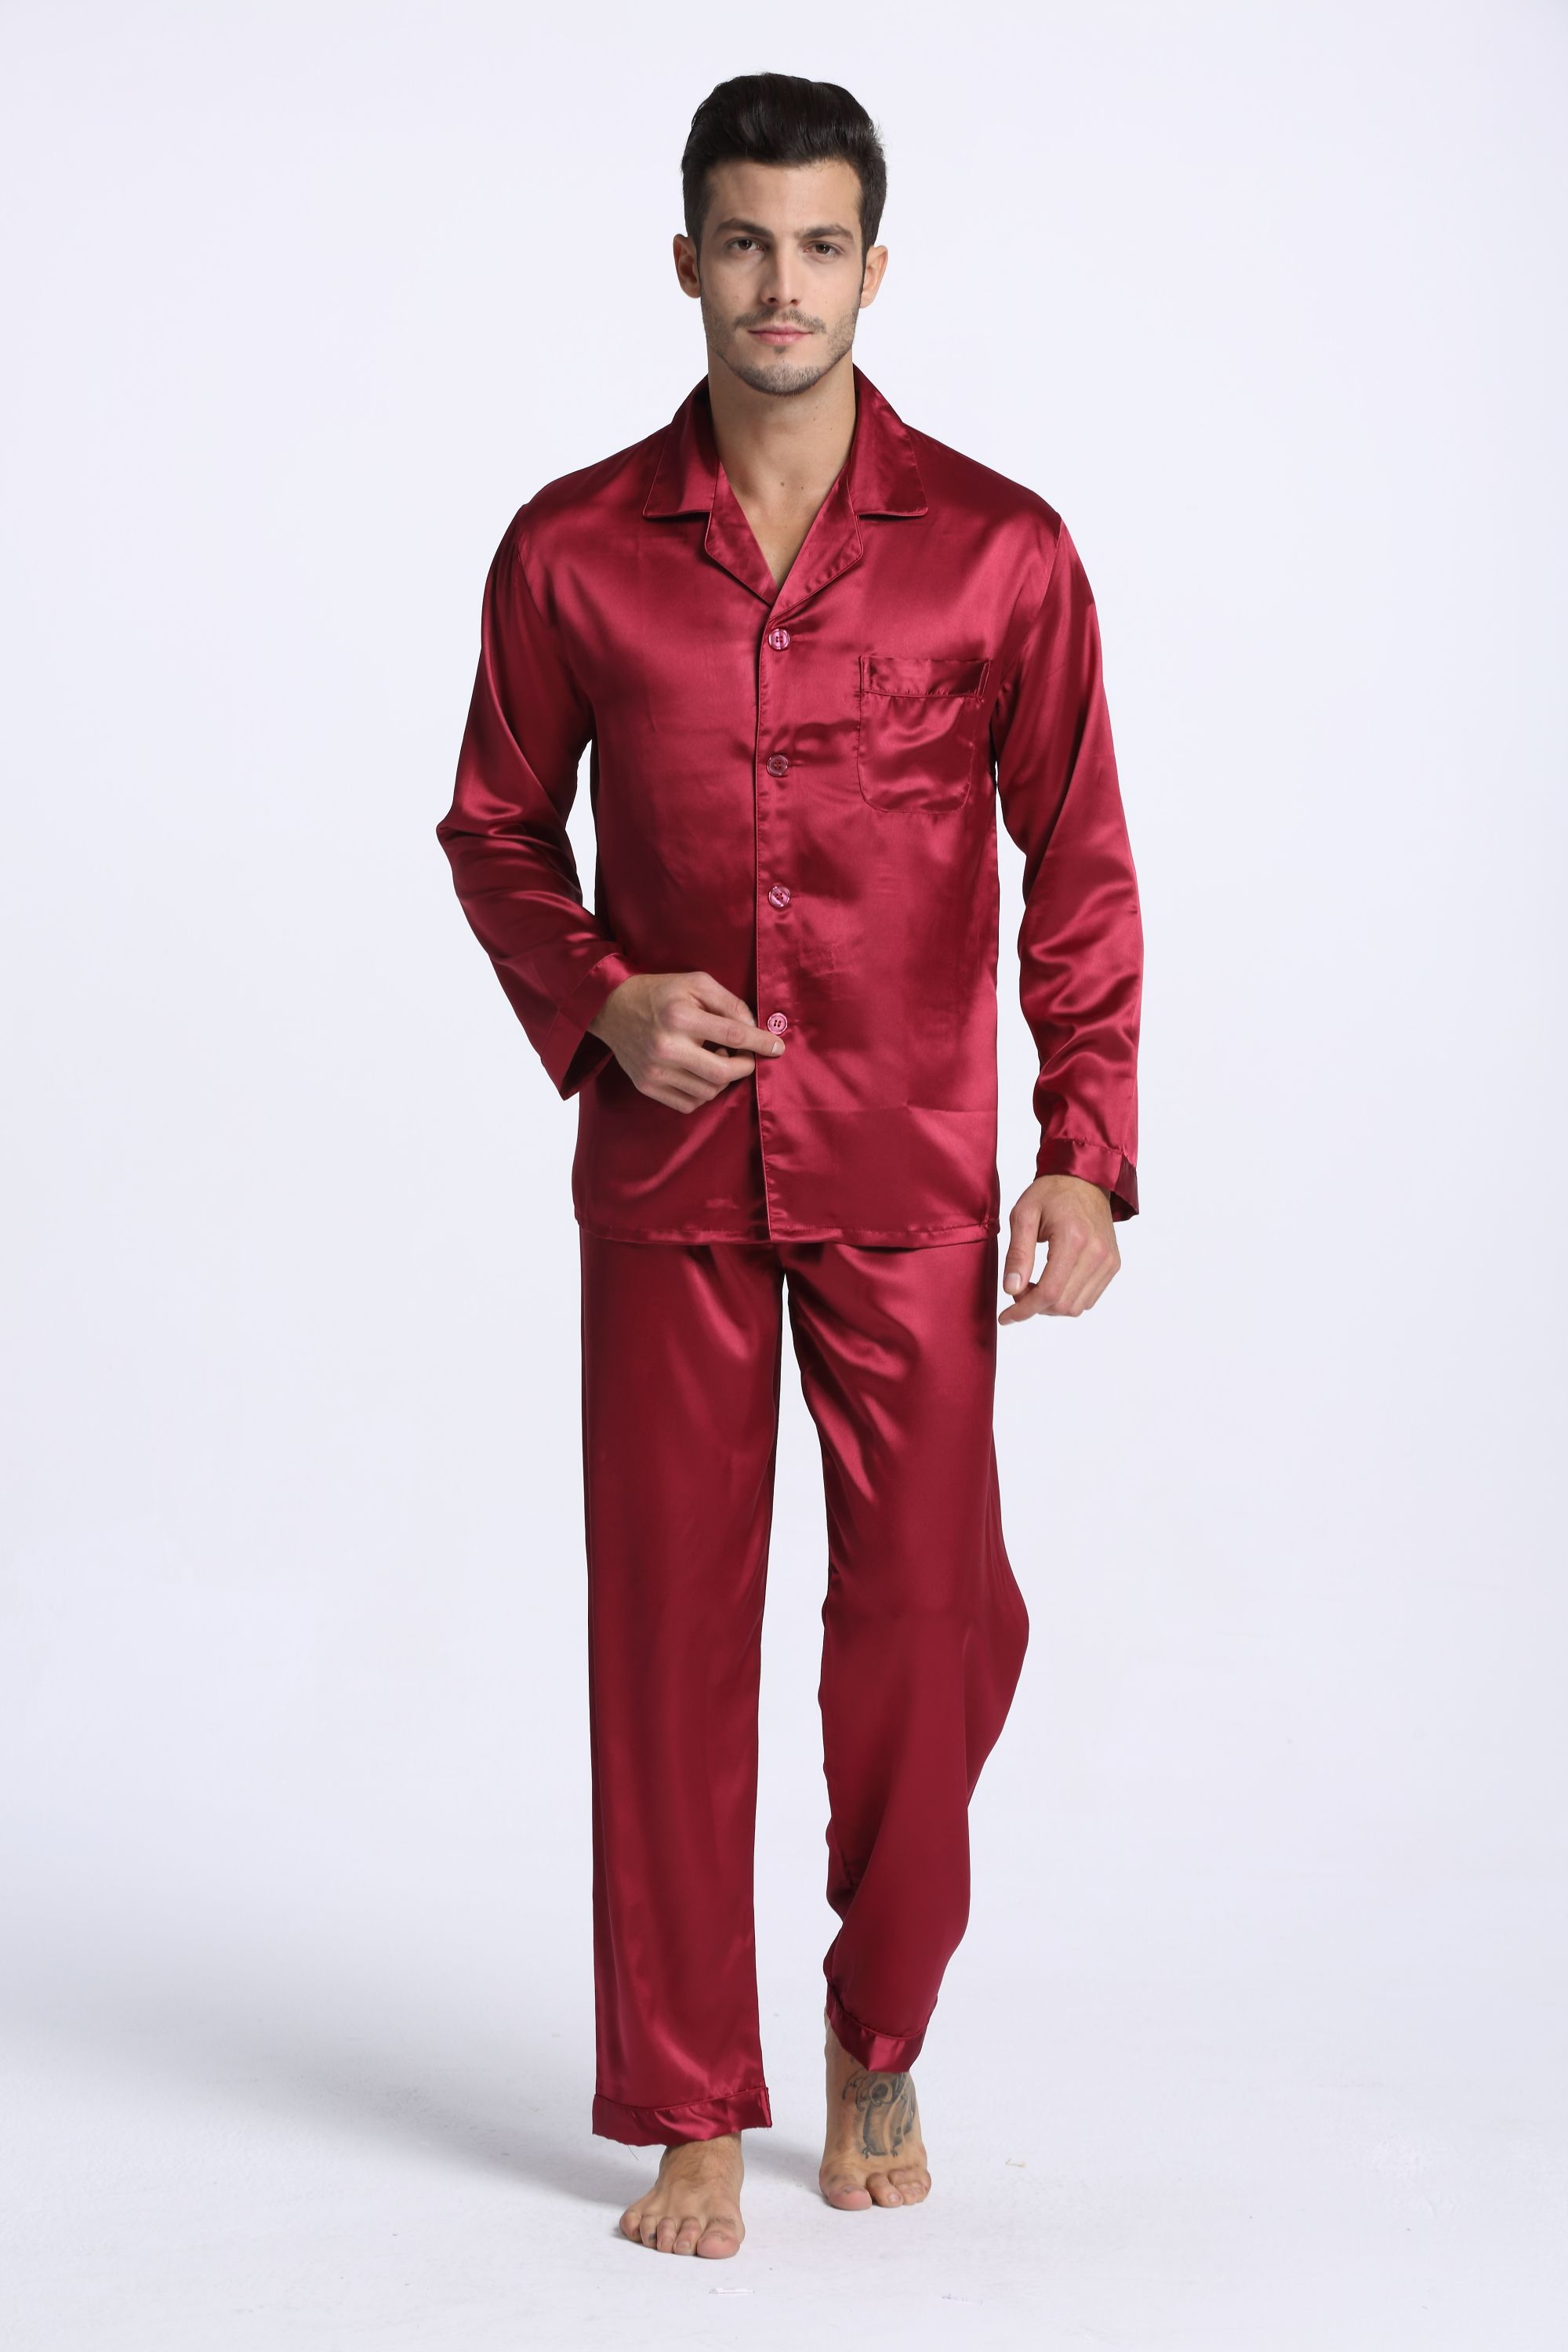 Underwear & Sleepwears Men's Sleep & Lounge Loyal Hot Sale Men Silk Pajama Sets Summer Mens Pajamas Sexy Sleepwear Male Short-sleeve Shorts Pajamas Fashion Men Homewear Sets Beautiful And Charming